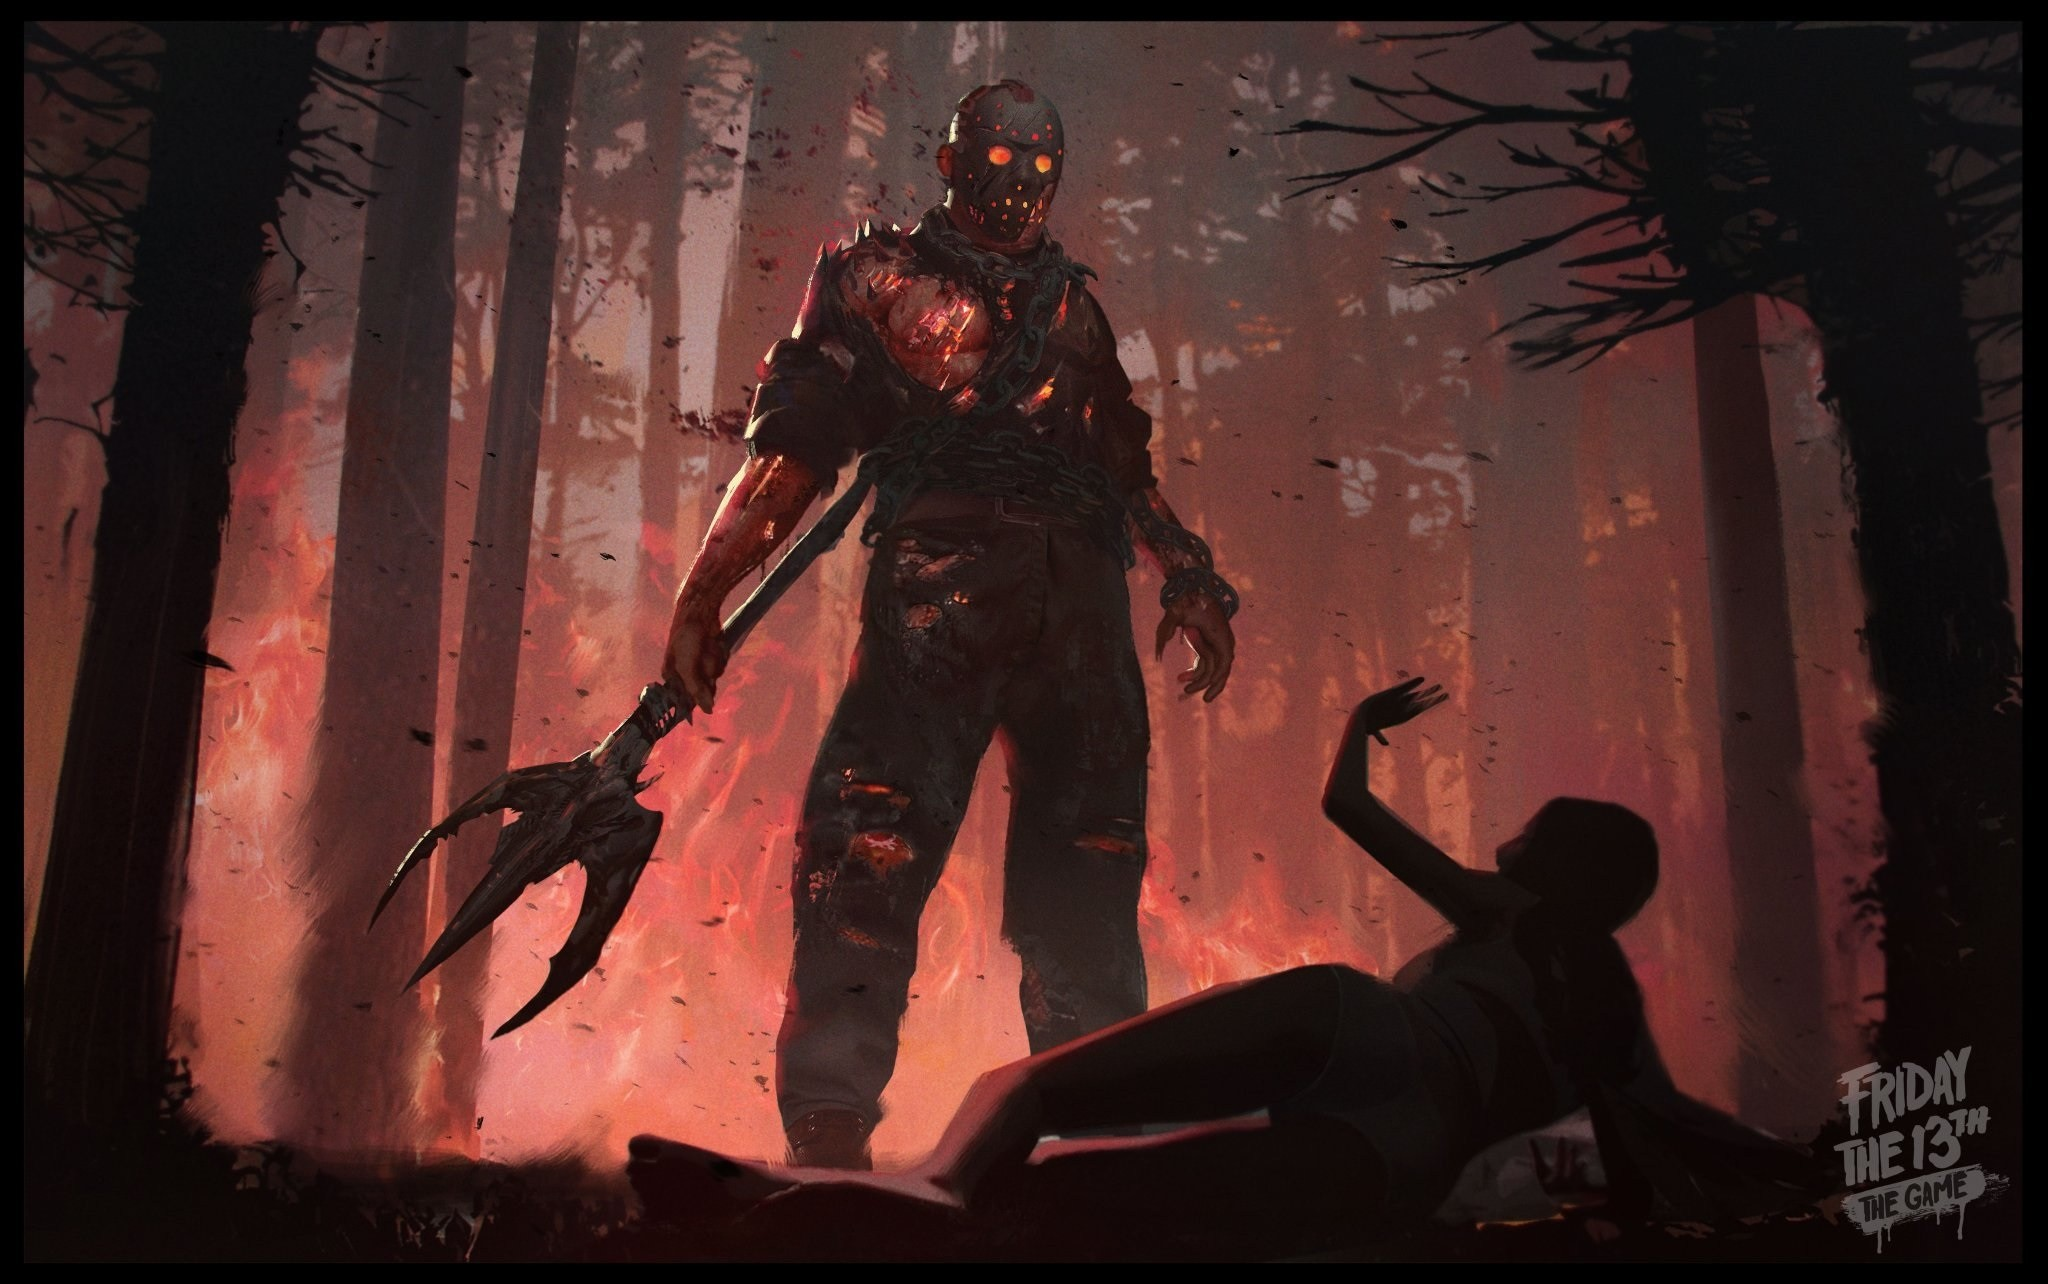 Res: 2048x1284, Video Game - Friday the 13th: The Game Wallpaper